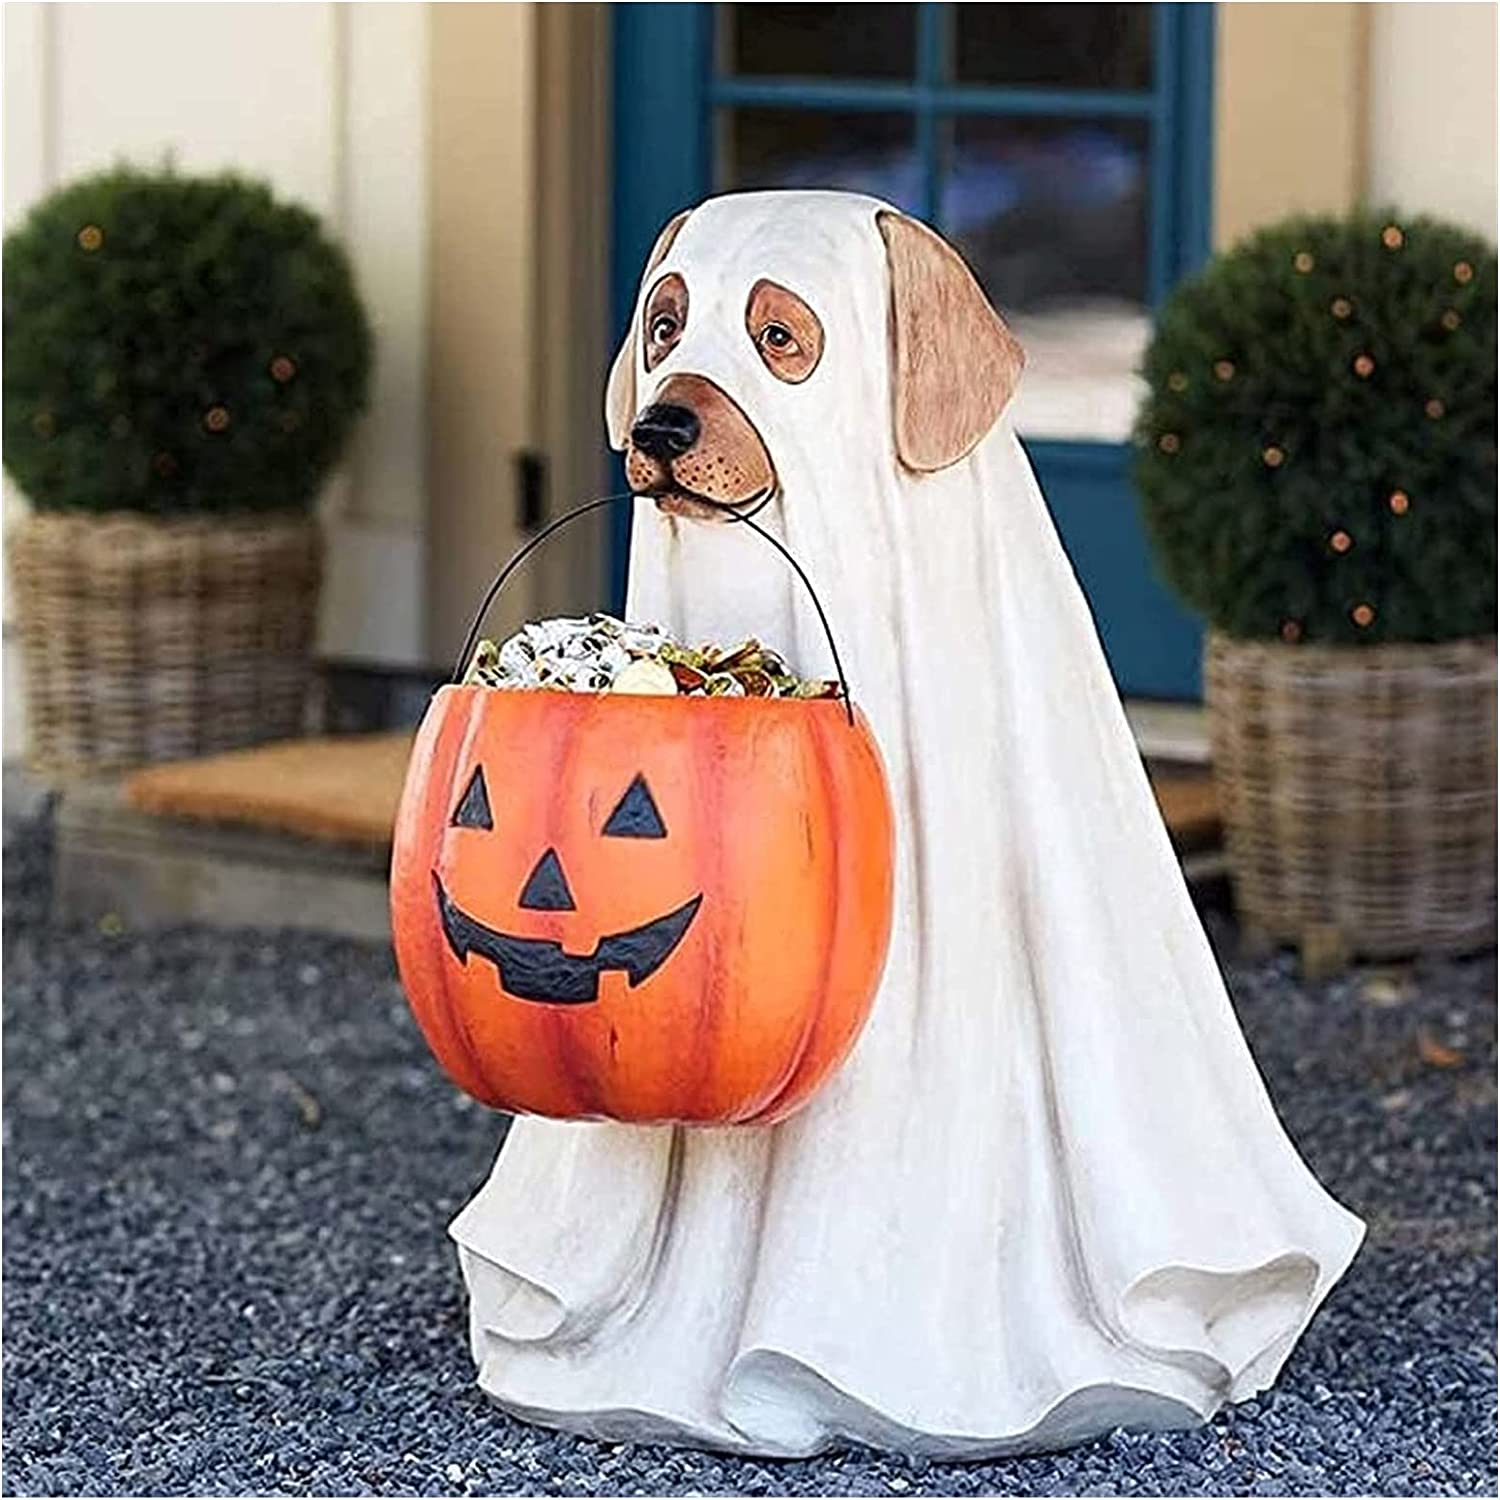 WEFVB Halloween Outdoor Life-Size Candy New item Bowl Dog Bombing new work Ghost